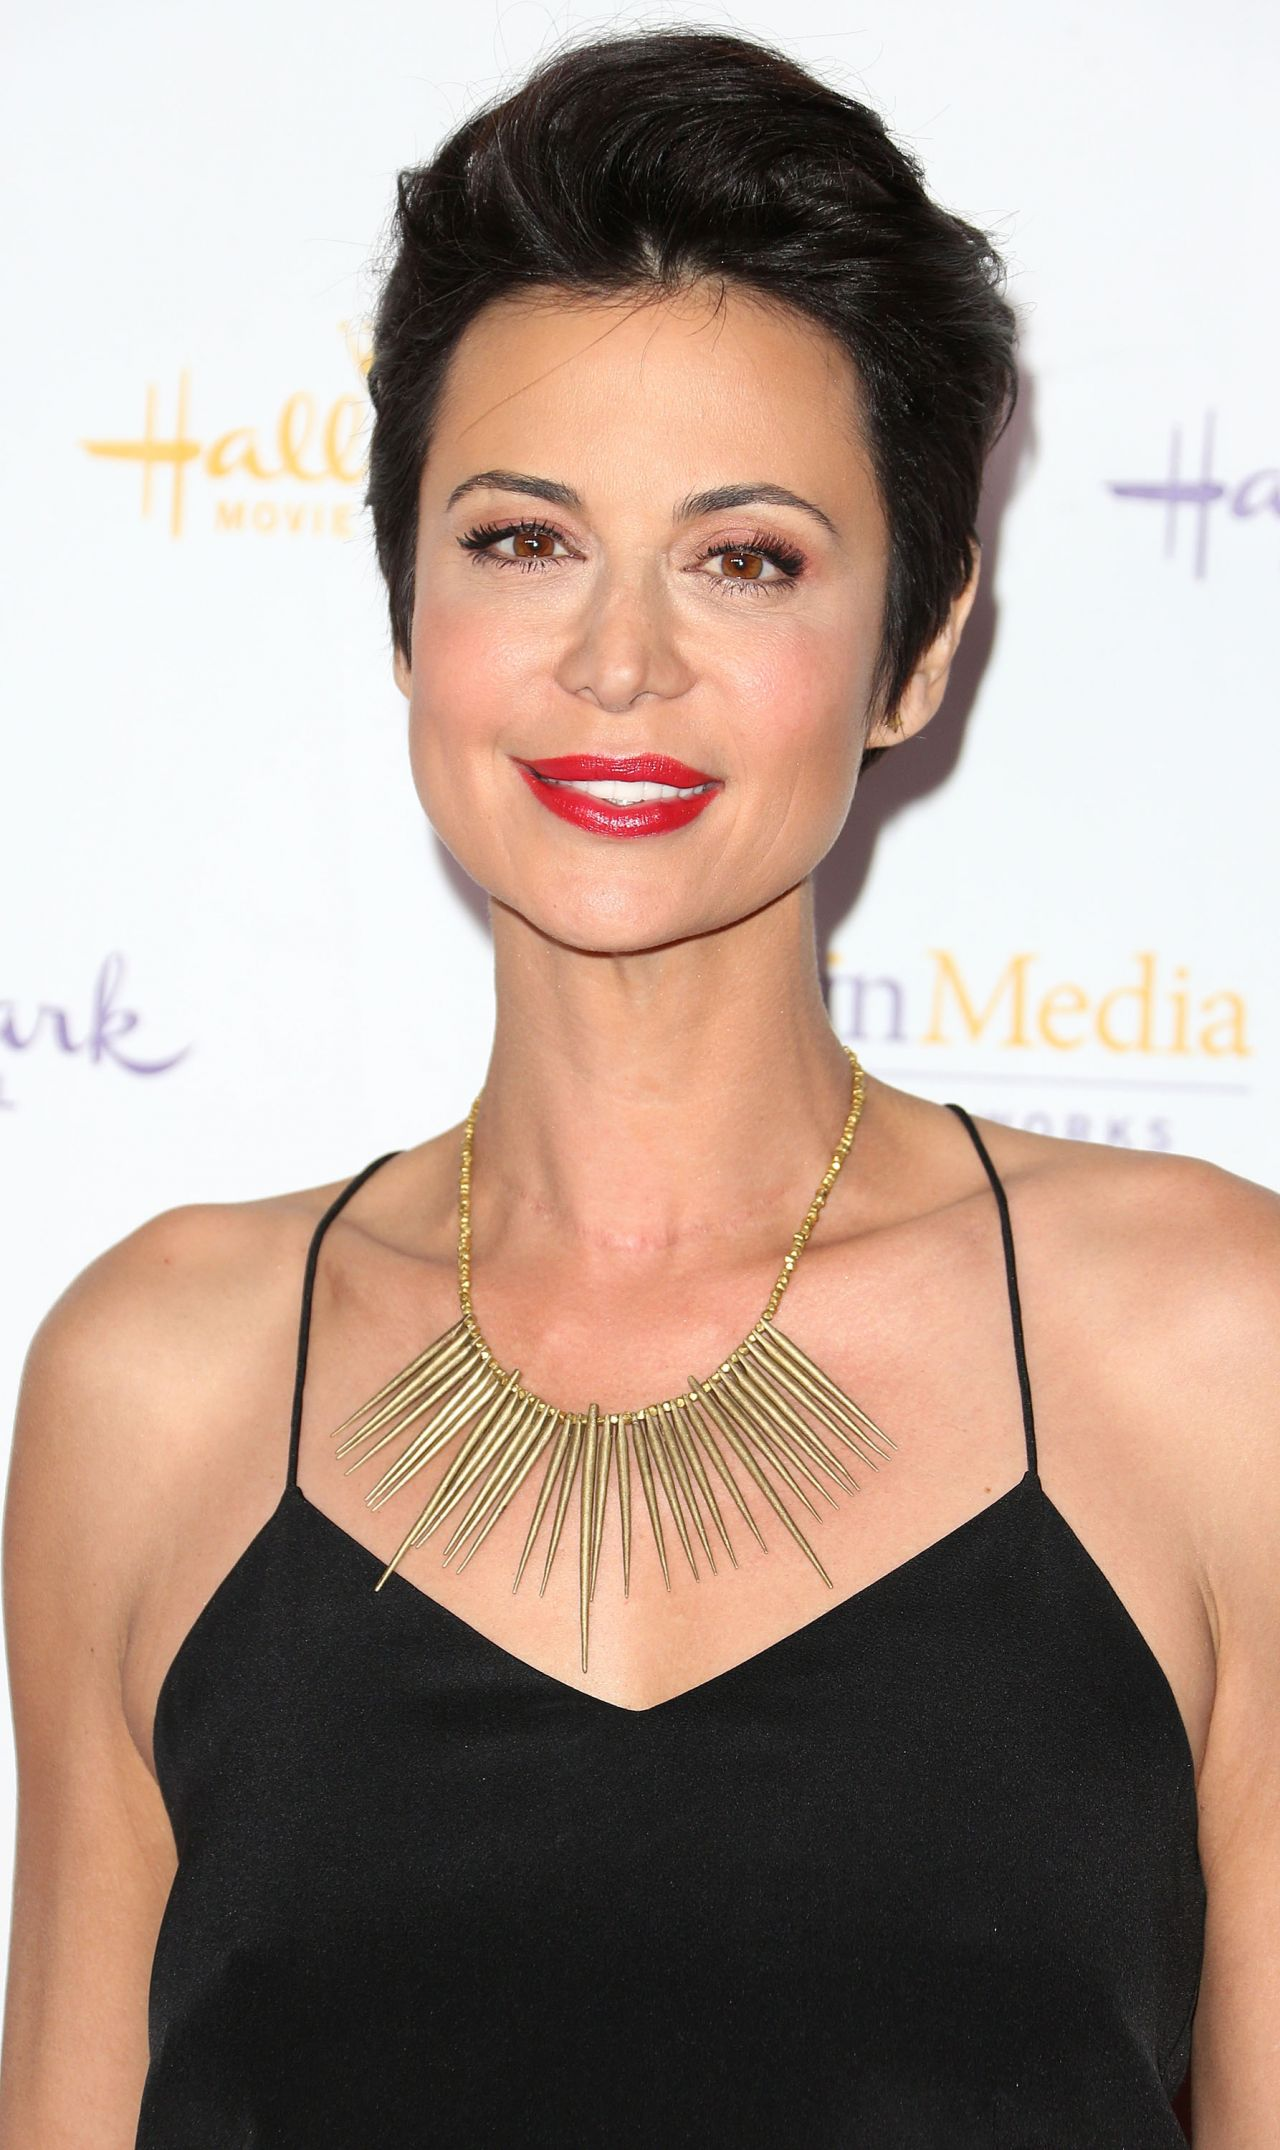 Catherine Bell Attends Hallmark Winter TCA party in San Marino - January 2014